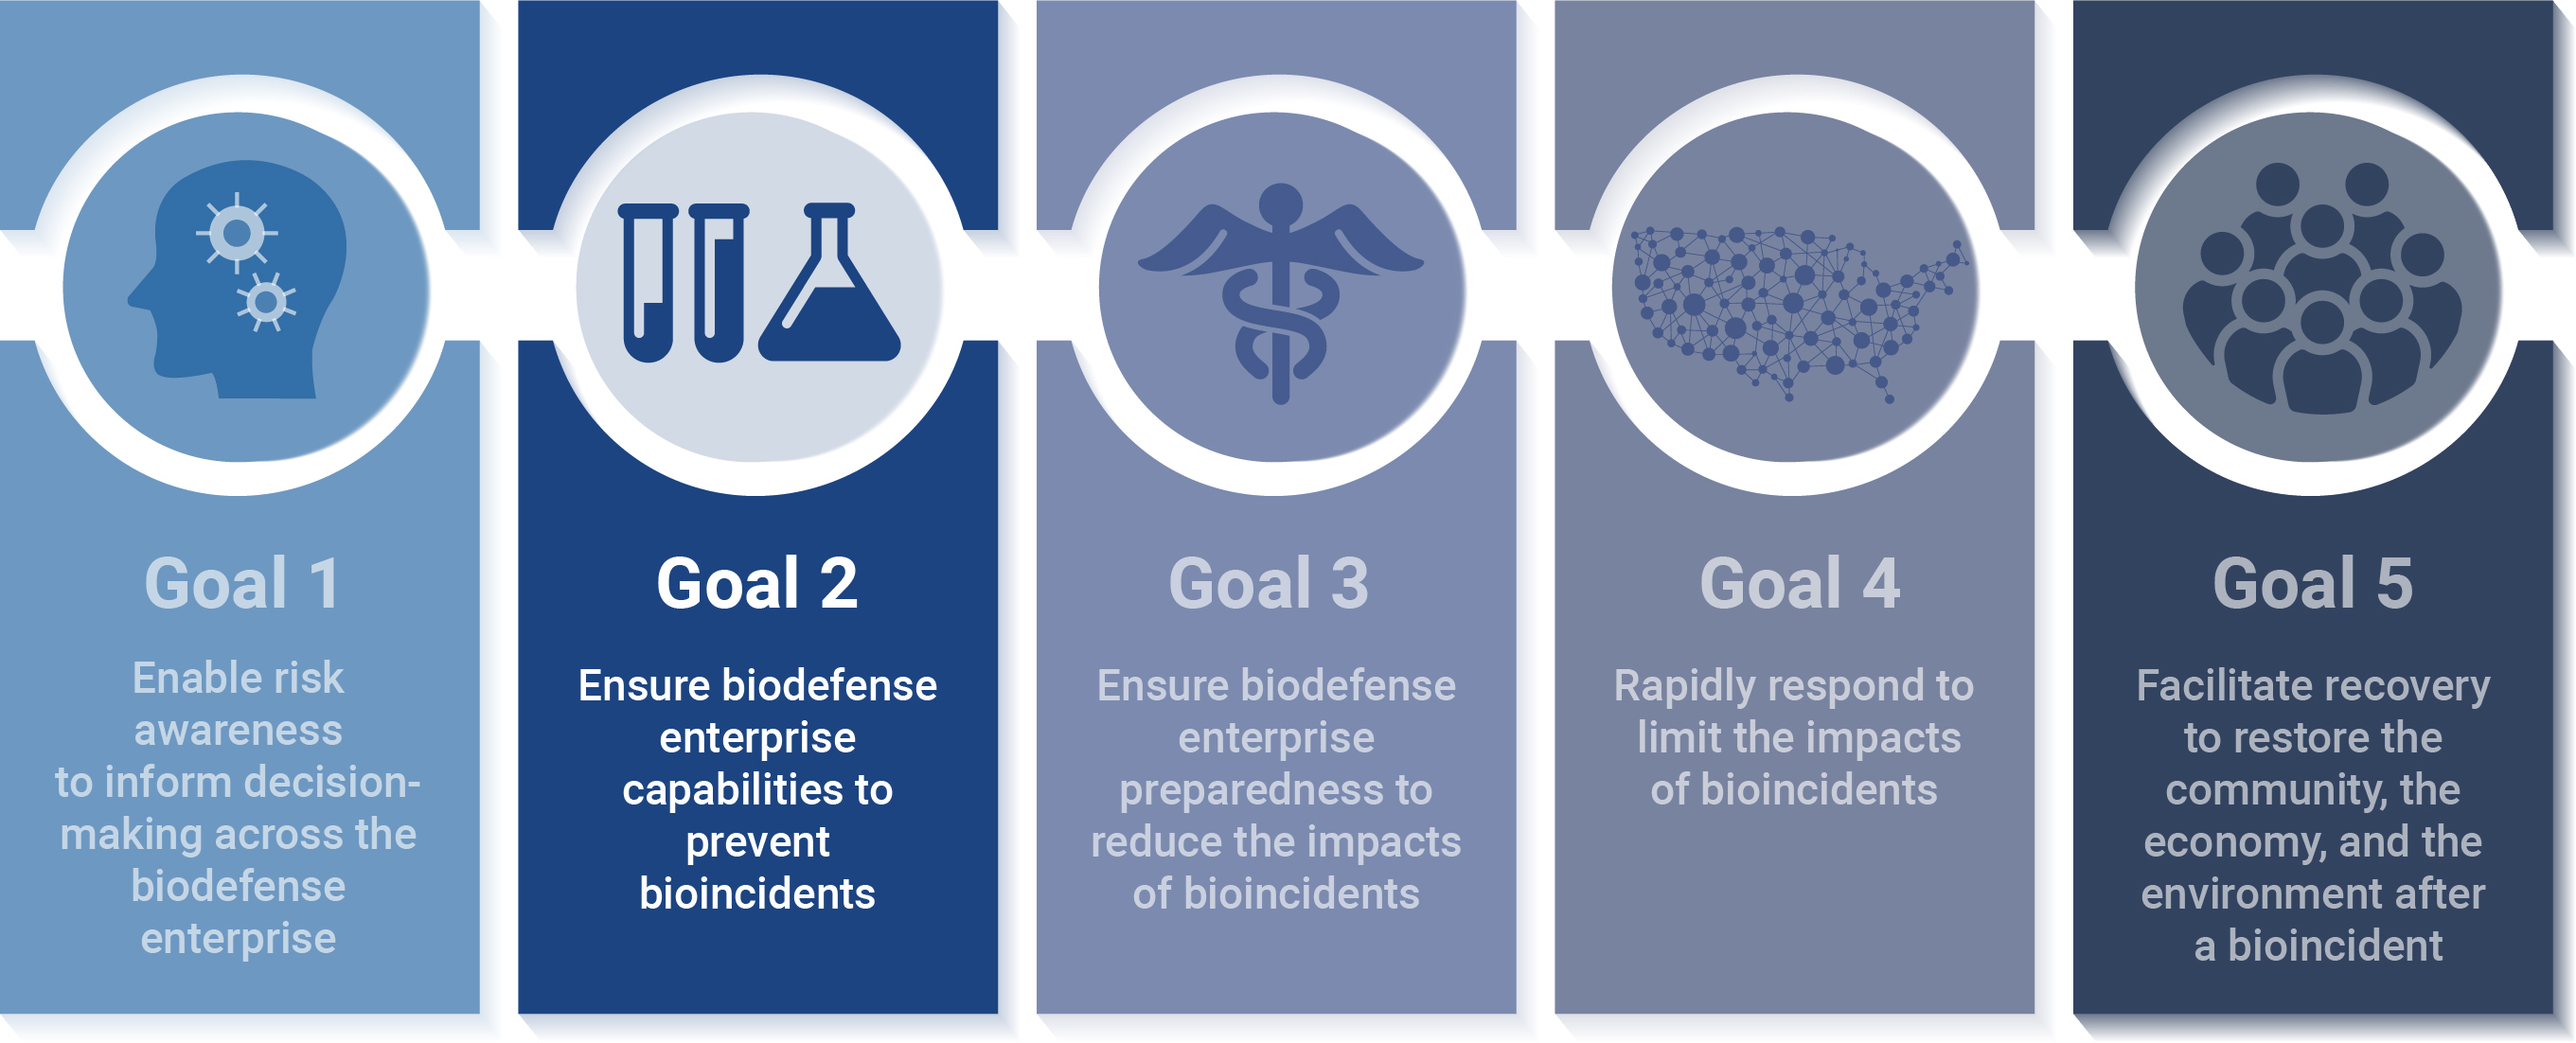 Illustration of the 5  biodefense strategies, with a focus on Goal 2, which is to ensure biodefense enterprise capabilities to p